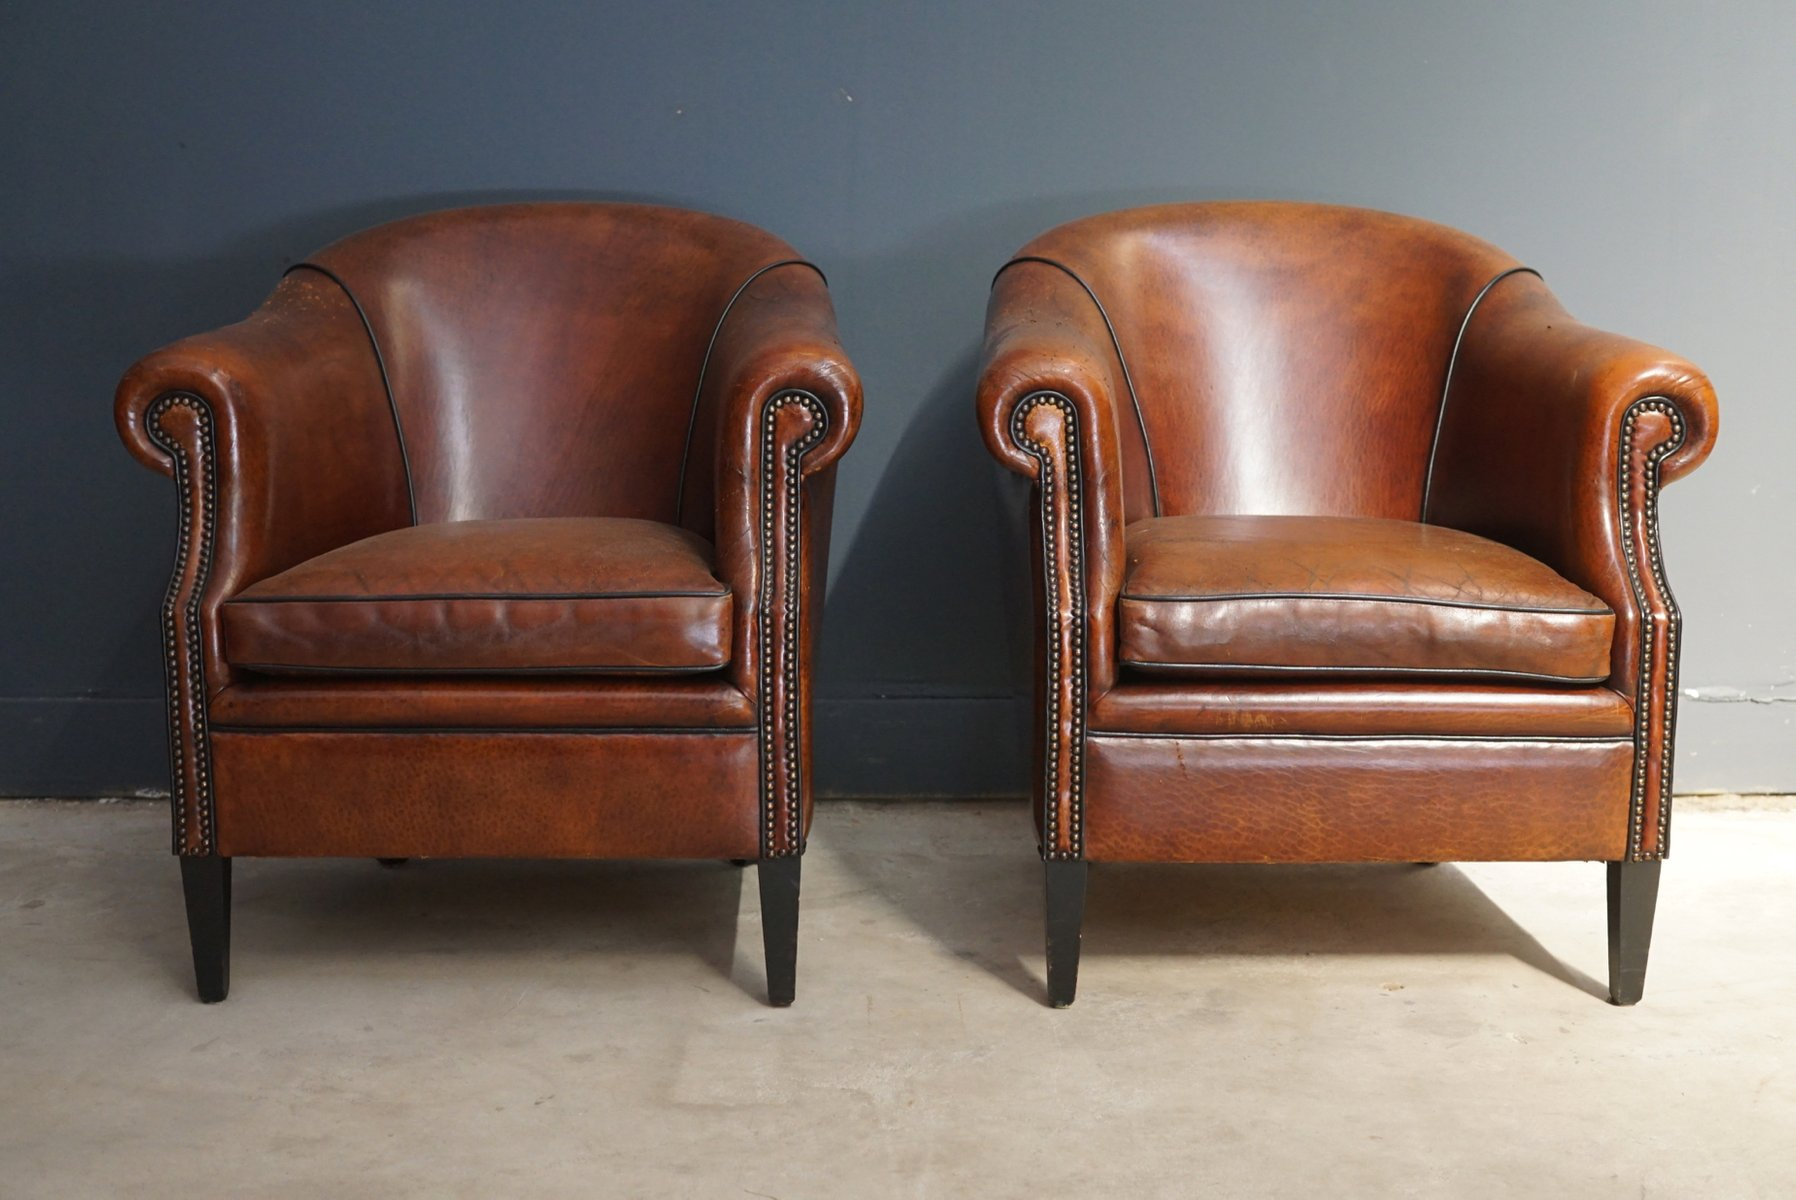 Club Chair Leather Vintage Cognac Leather Club Chairs Set Of 2 For Sale At